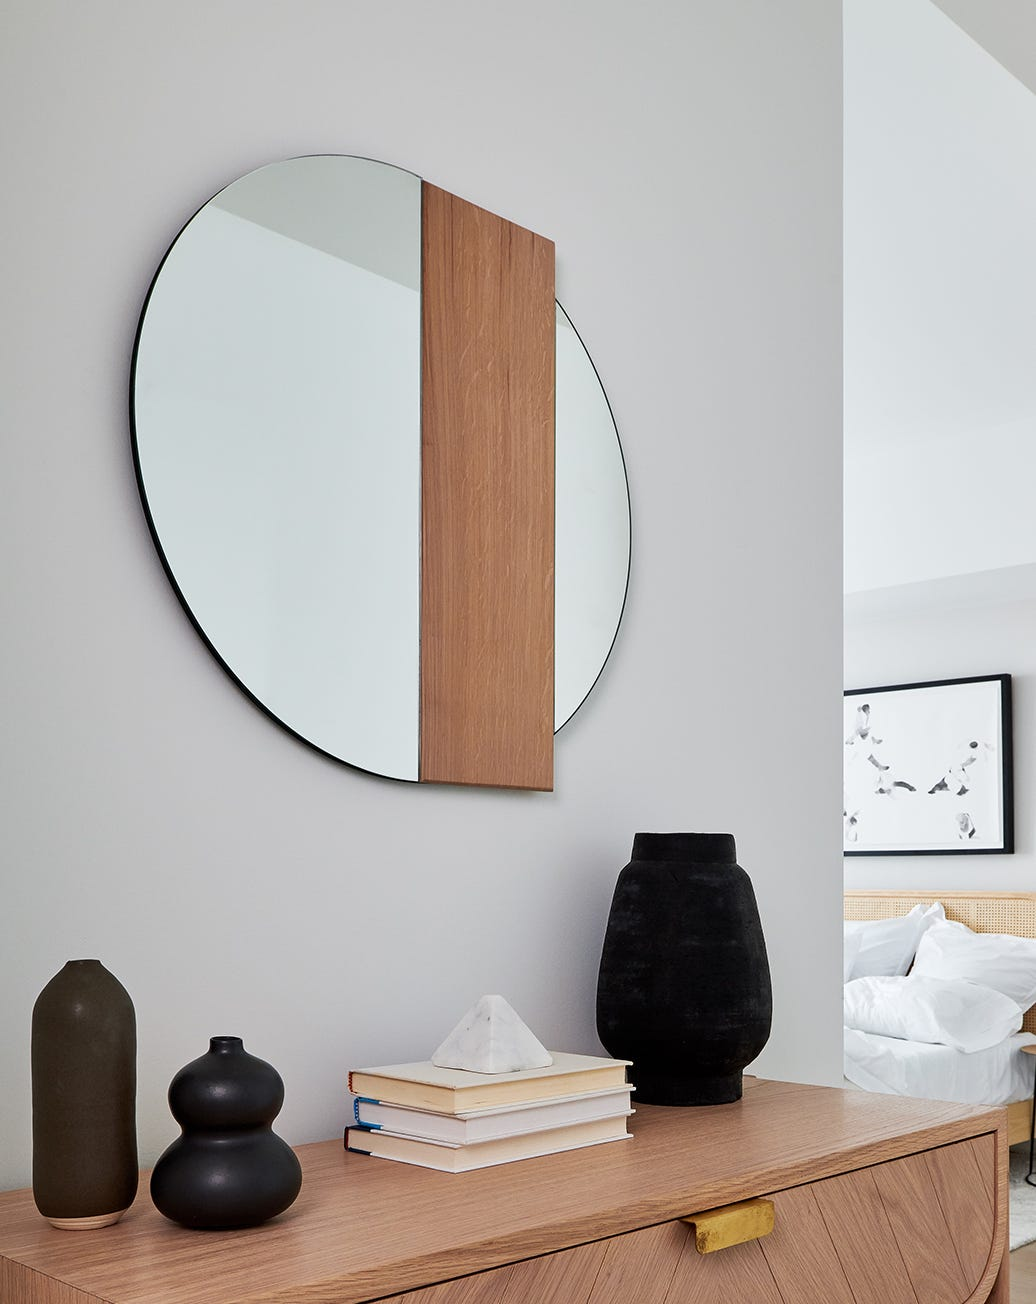 A round mirror with a rectangular wooden accent hanging over a wooden console table